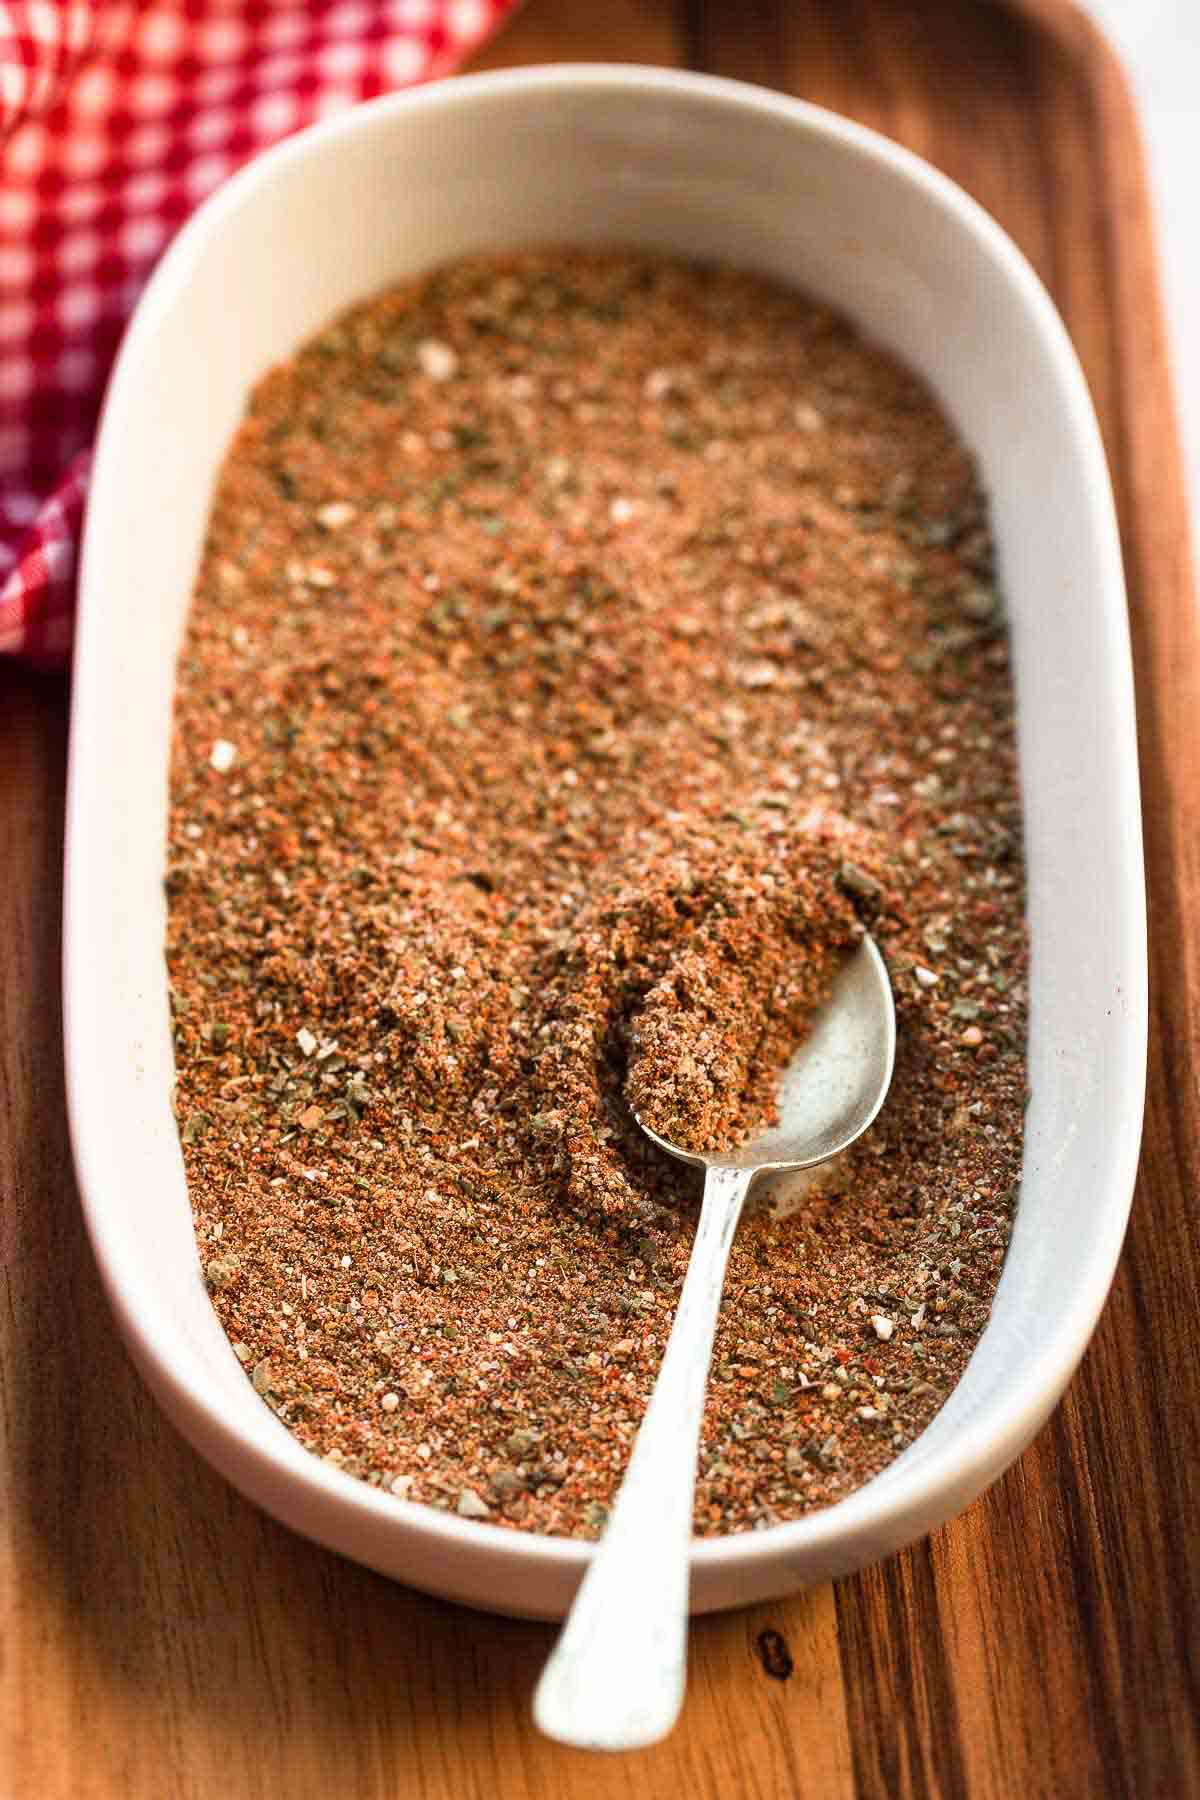 Taco seasoning in a bowl with a teaspoon, placed on a wooden board